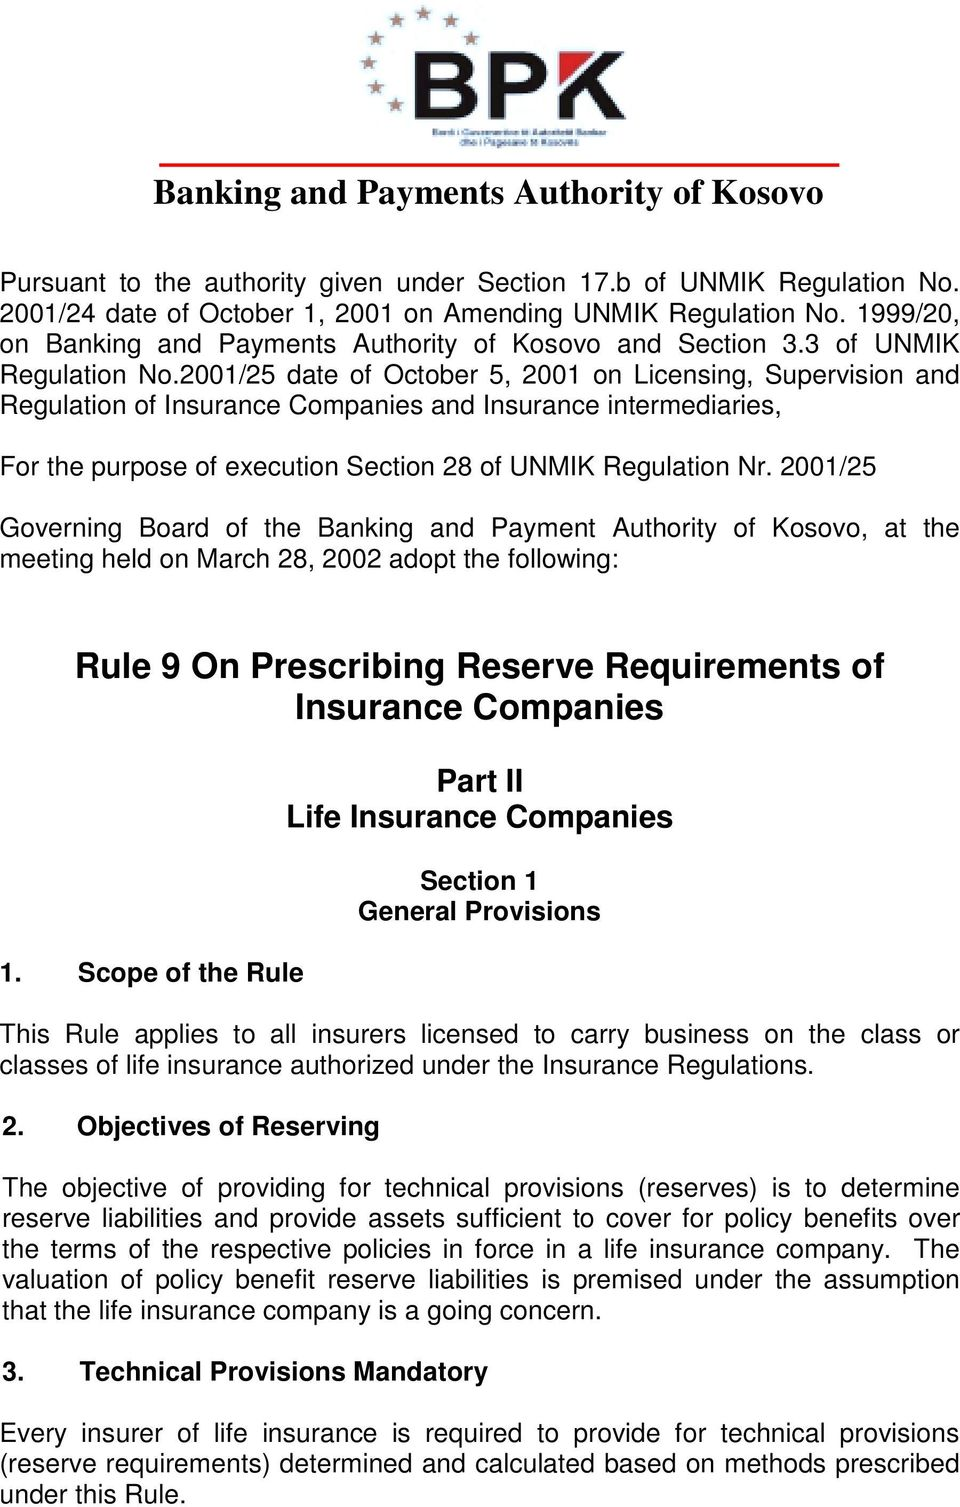 2001/25 date of October 5, 2001 on Licensing, Supervision and Regulation of Insurance Companies and Insurance intermediaries, For the purpose of execution Section 28 of UNMIK Regulation Nr.